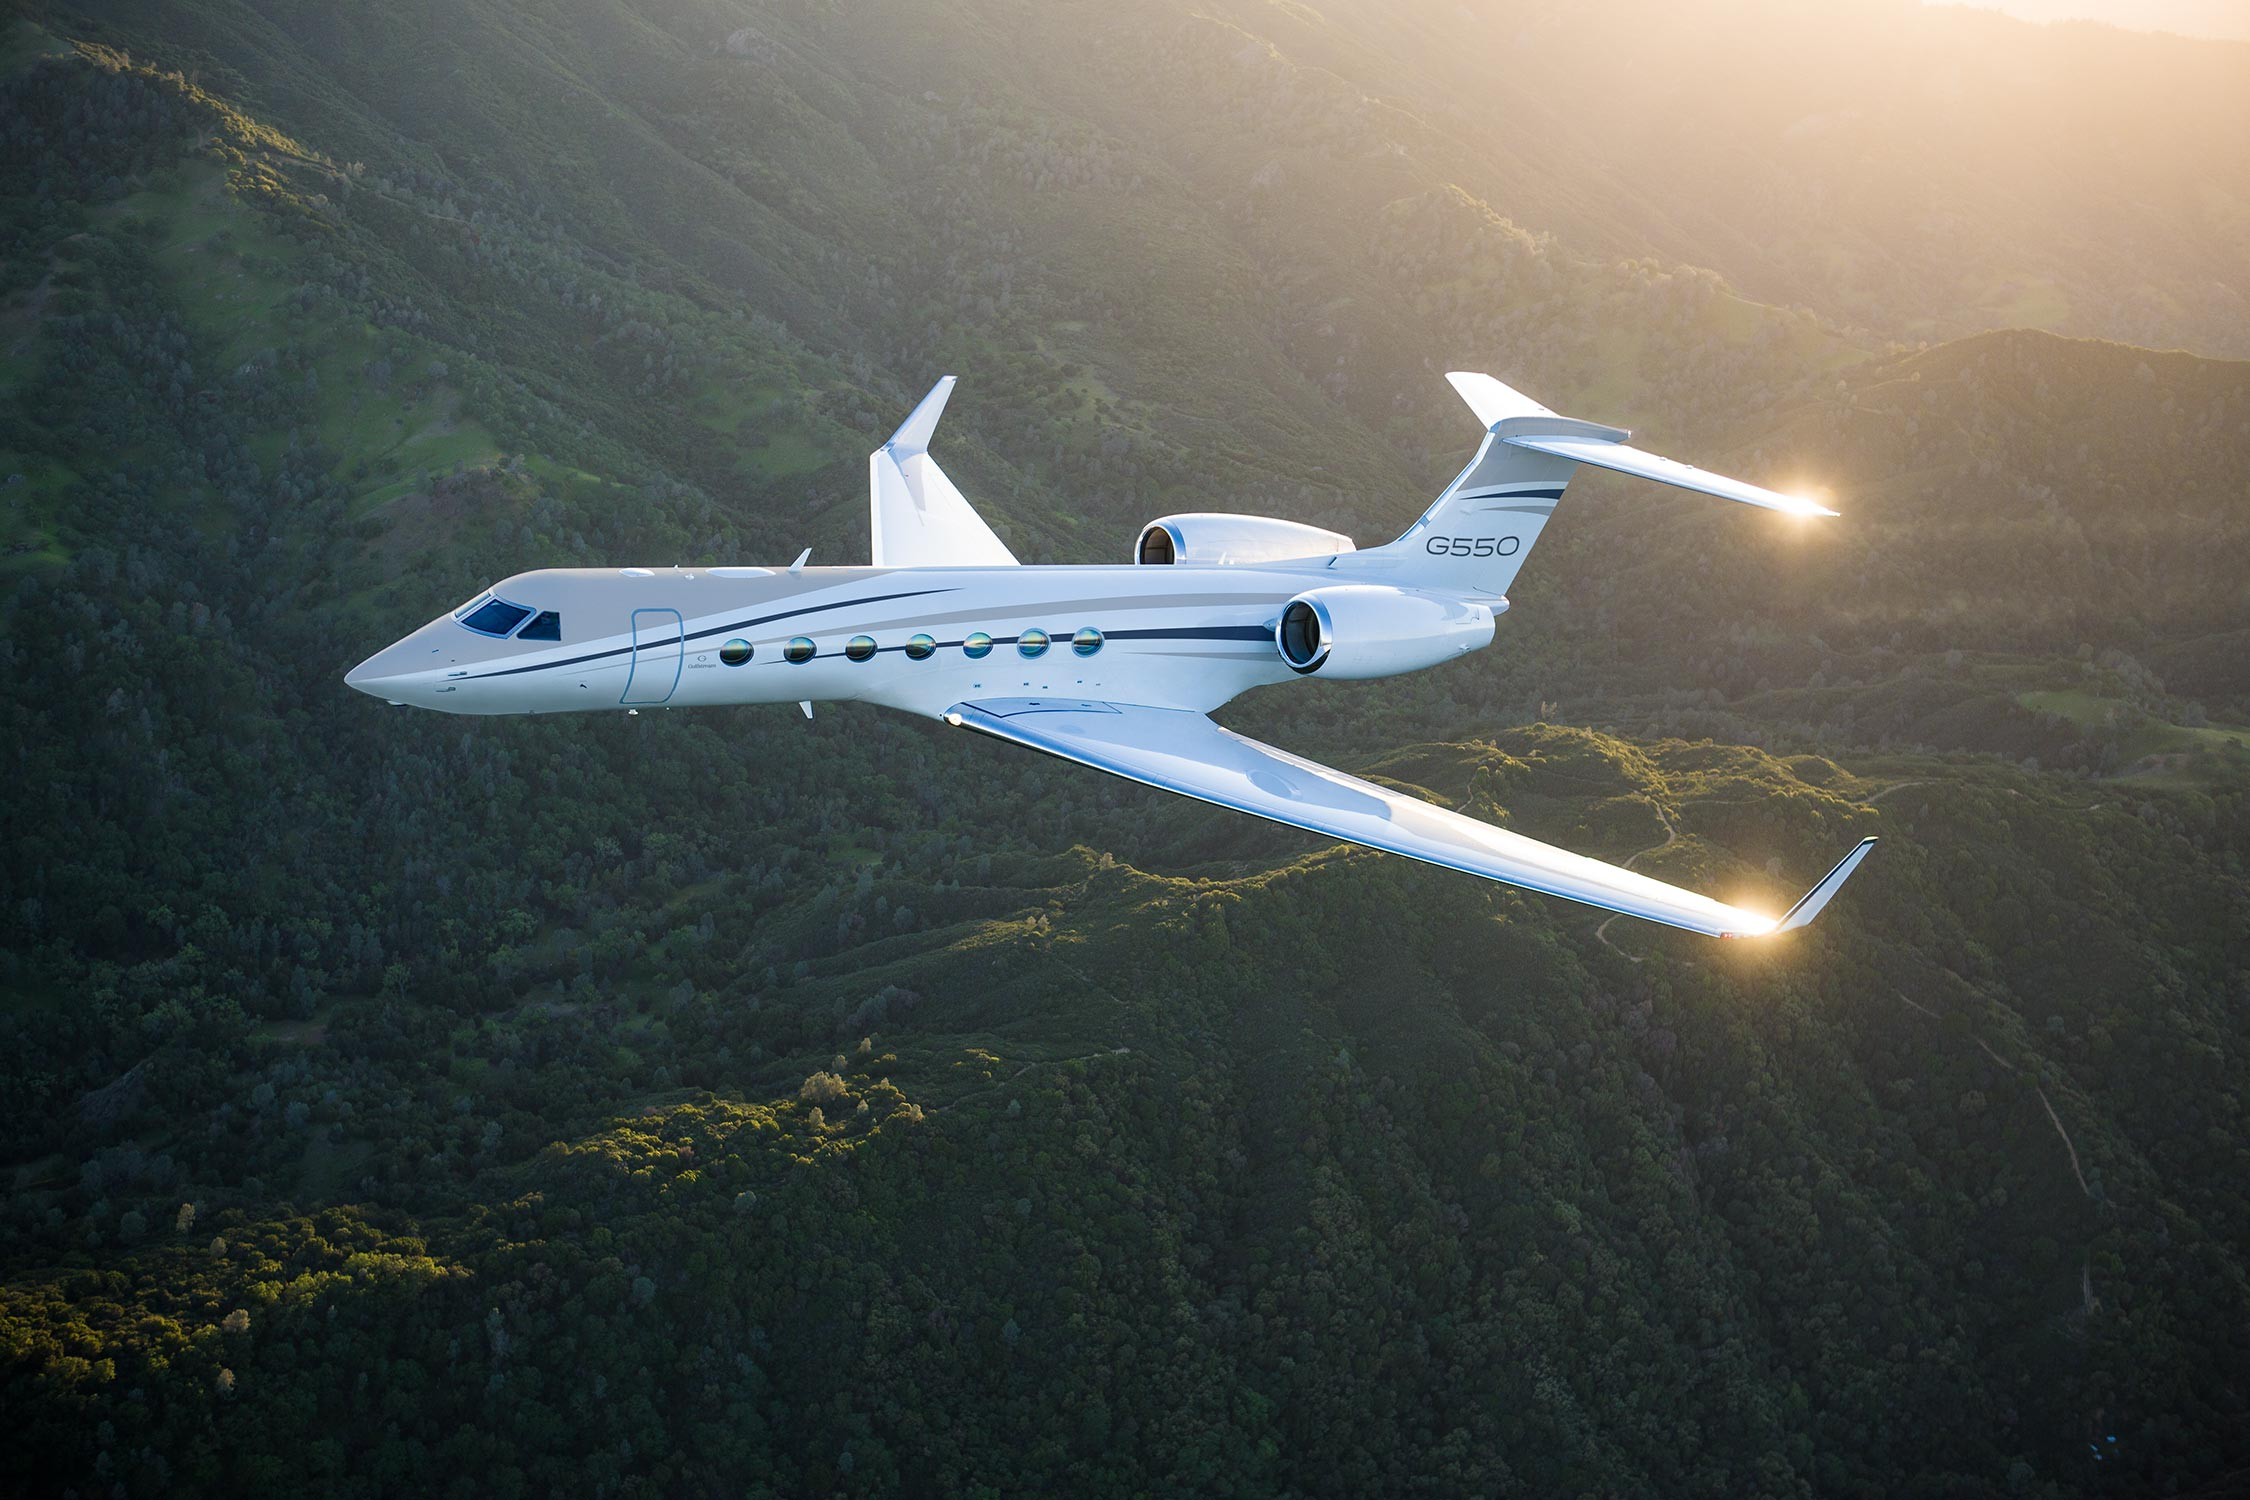 G550 flying over green mountains